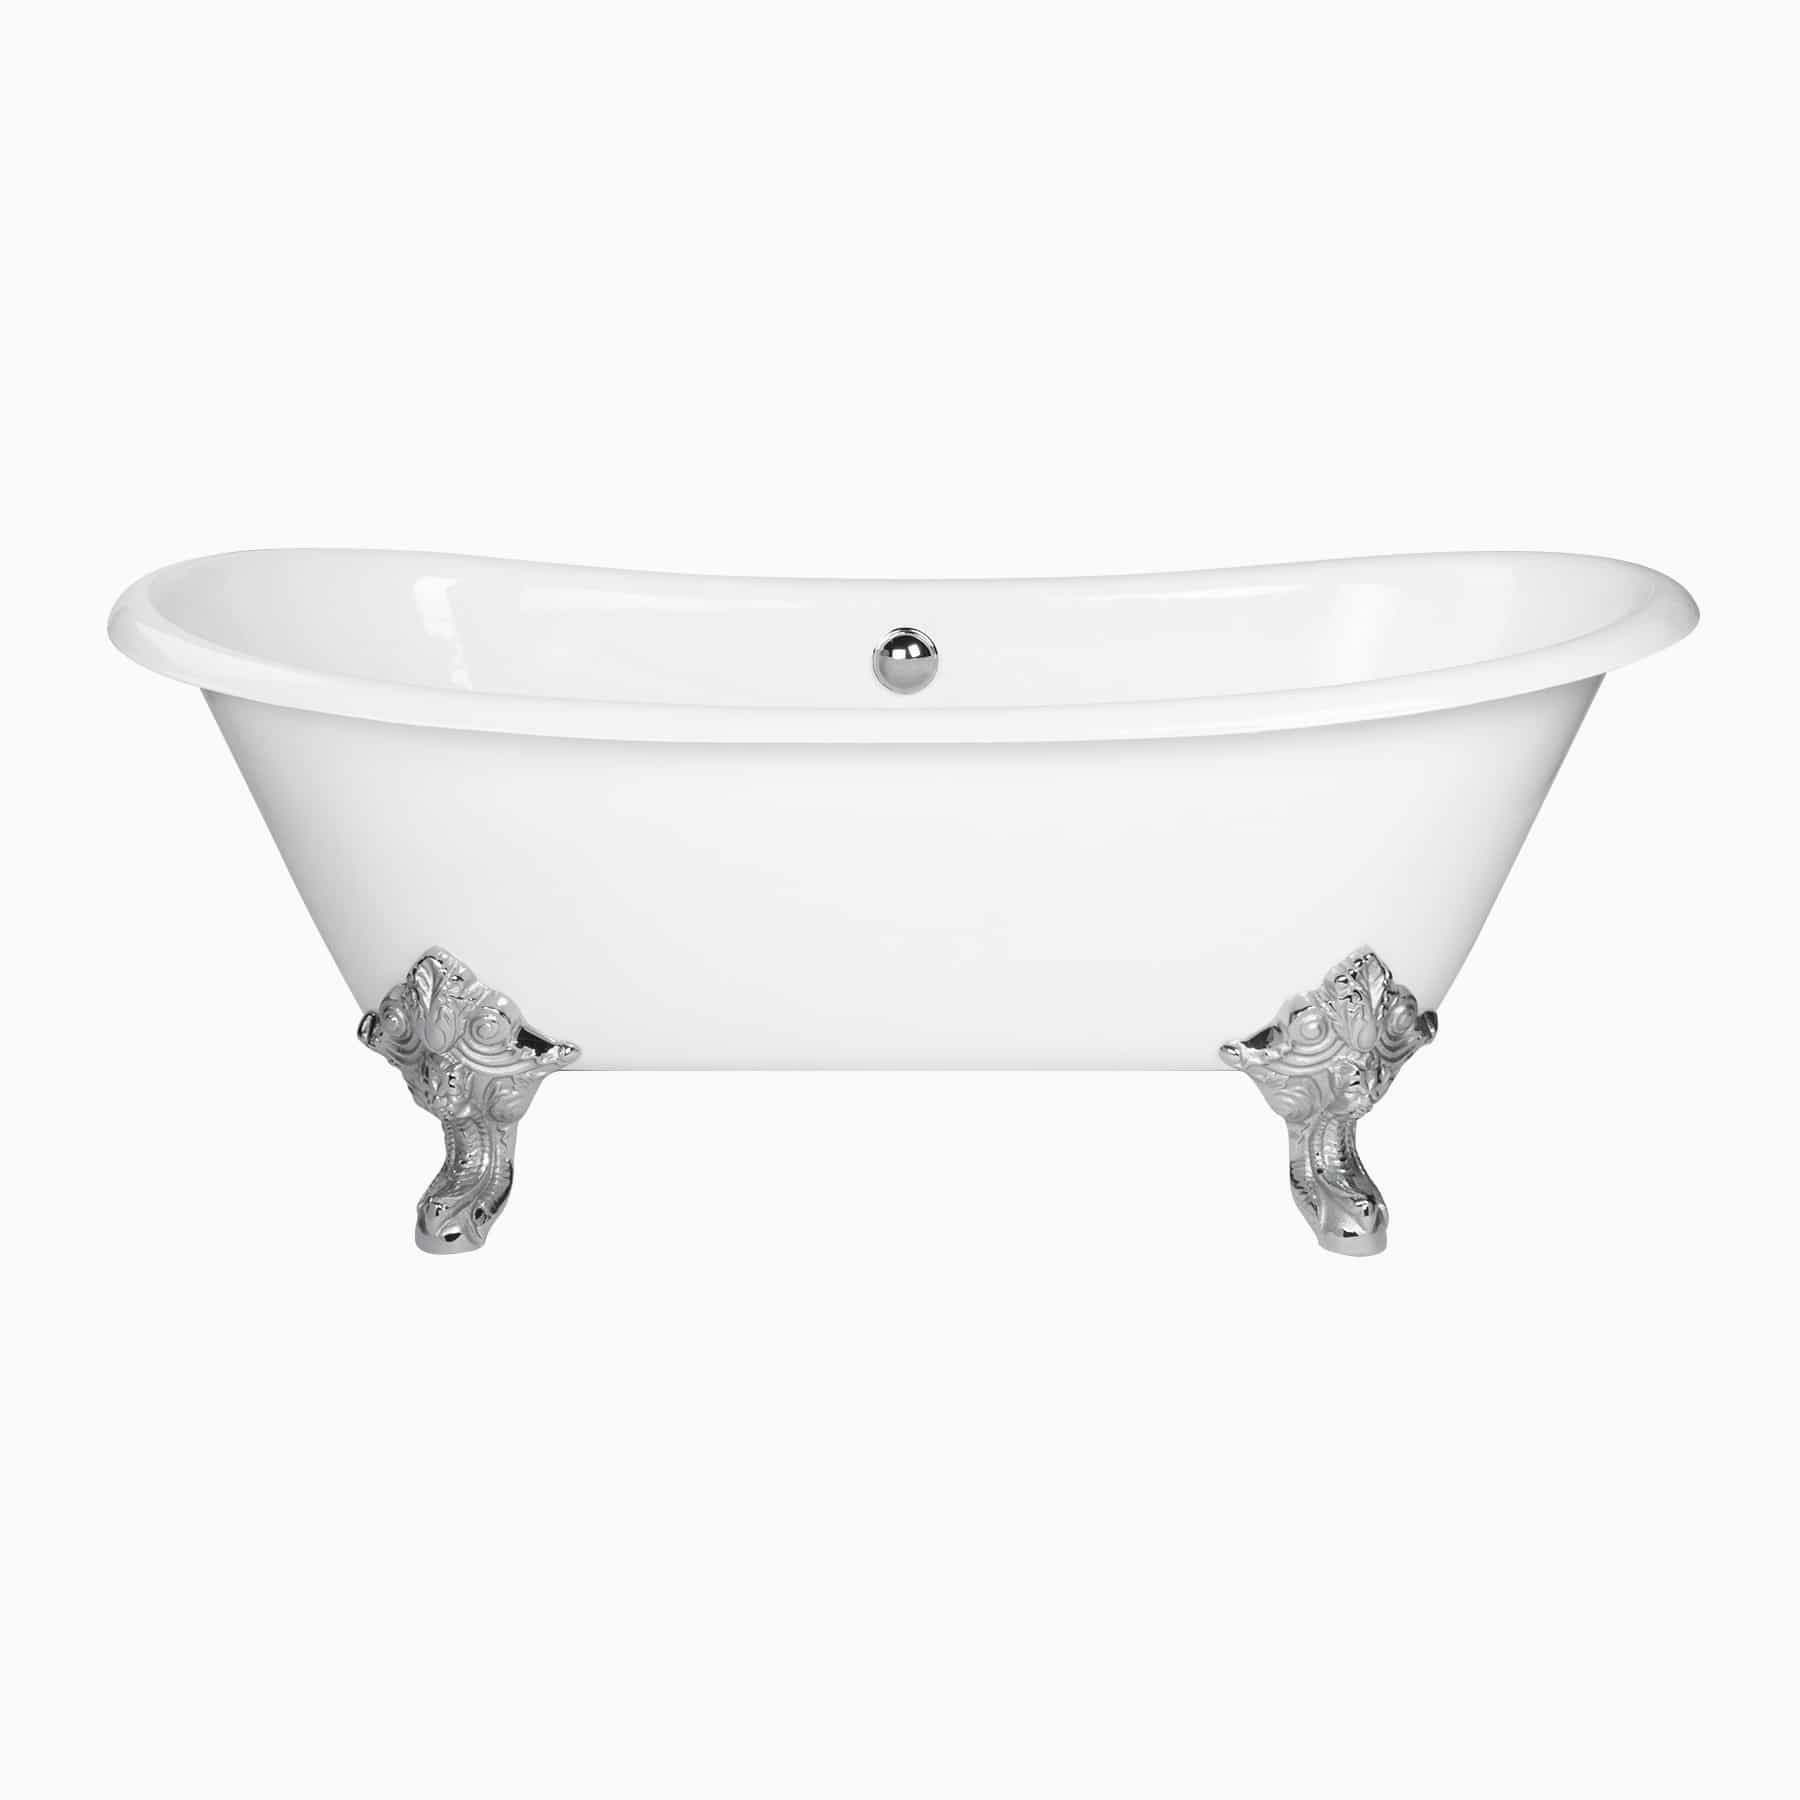 Katharine Clawfoot Bathtub from Maykke